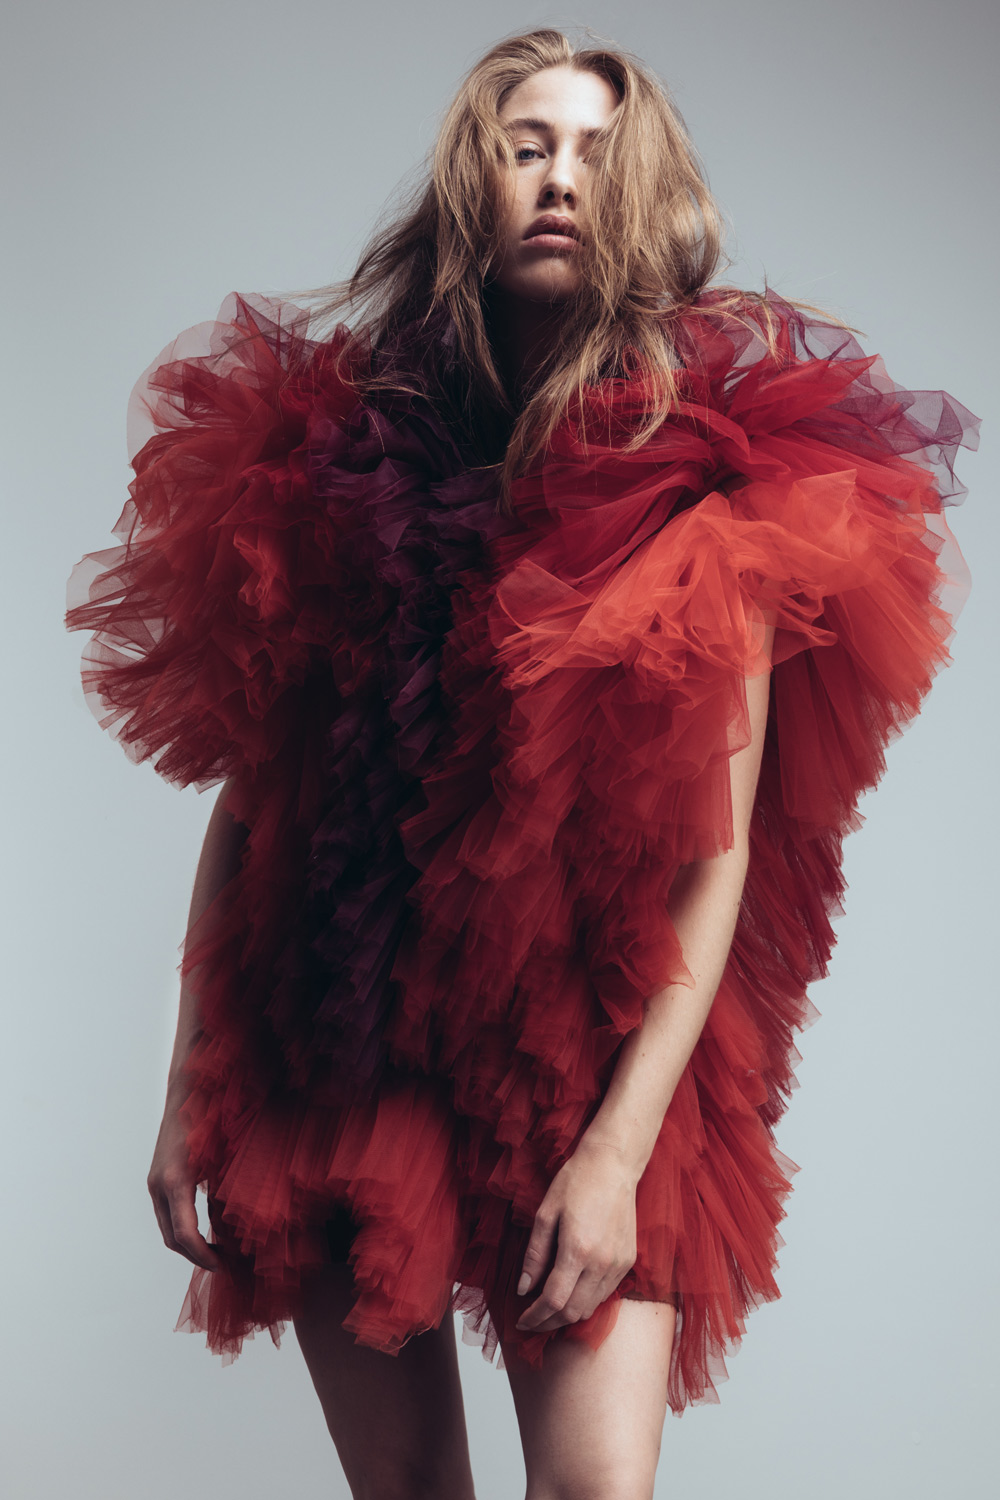 This month we're featuring Dutch artist Lennert Antonissen. Lennert is a fashion photographer based in Amsterdam.